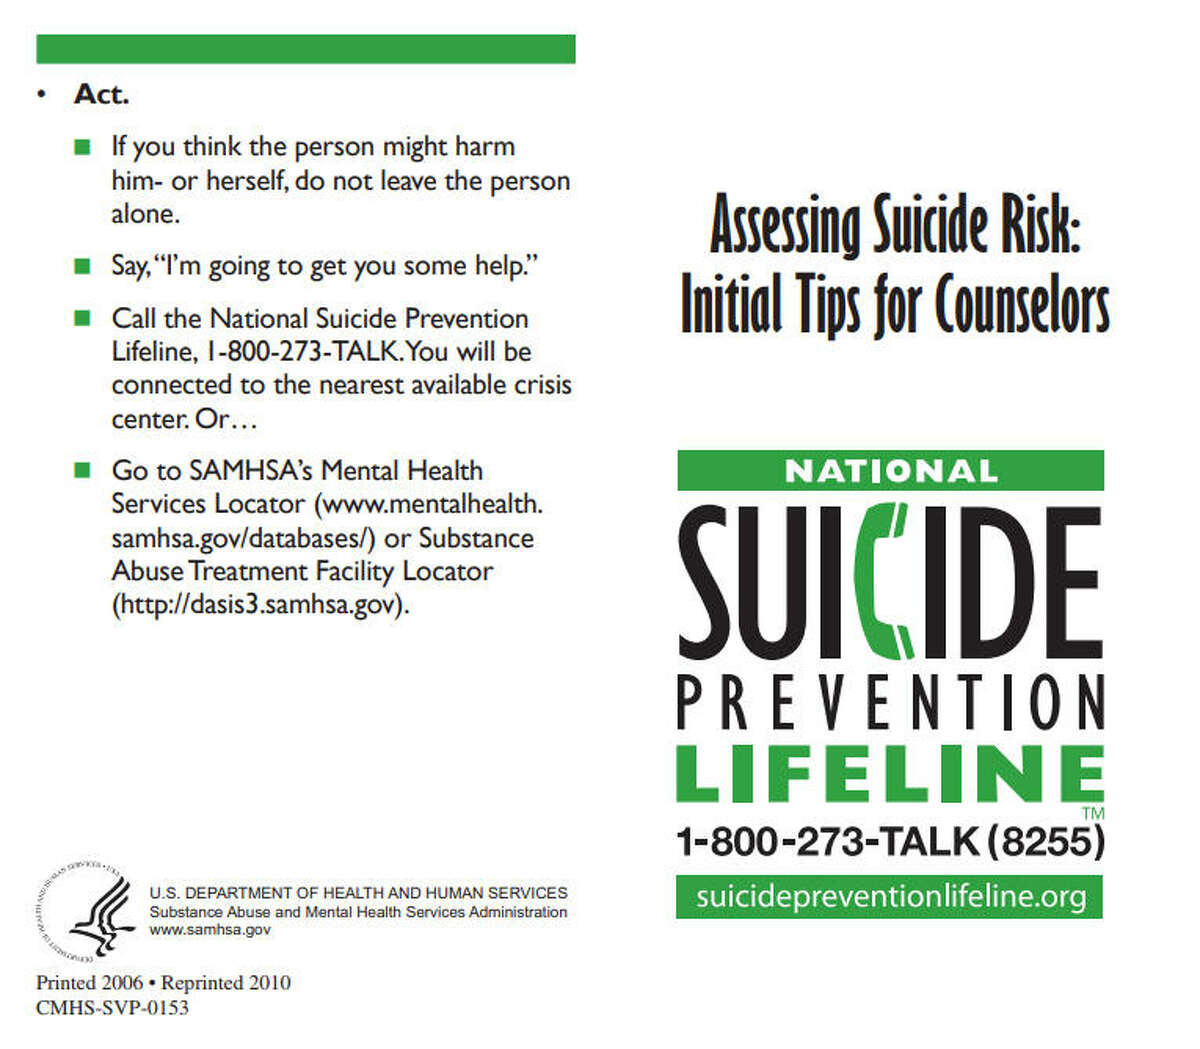 The National Suicide Prevention Lifeline presents the following guide for those dealing with suicidal thoughts or know someone who is. The National Suicide Prevention Lifeline can be reached 24/7 athttps://suicidepreventionlifeline.org.